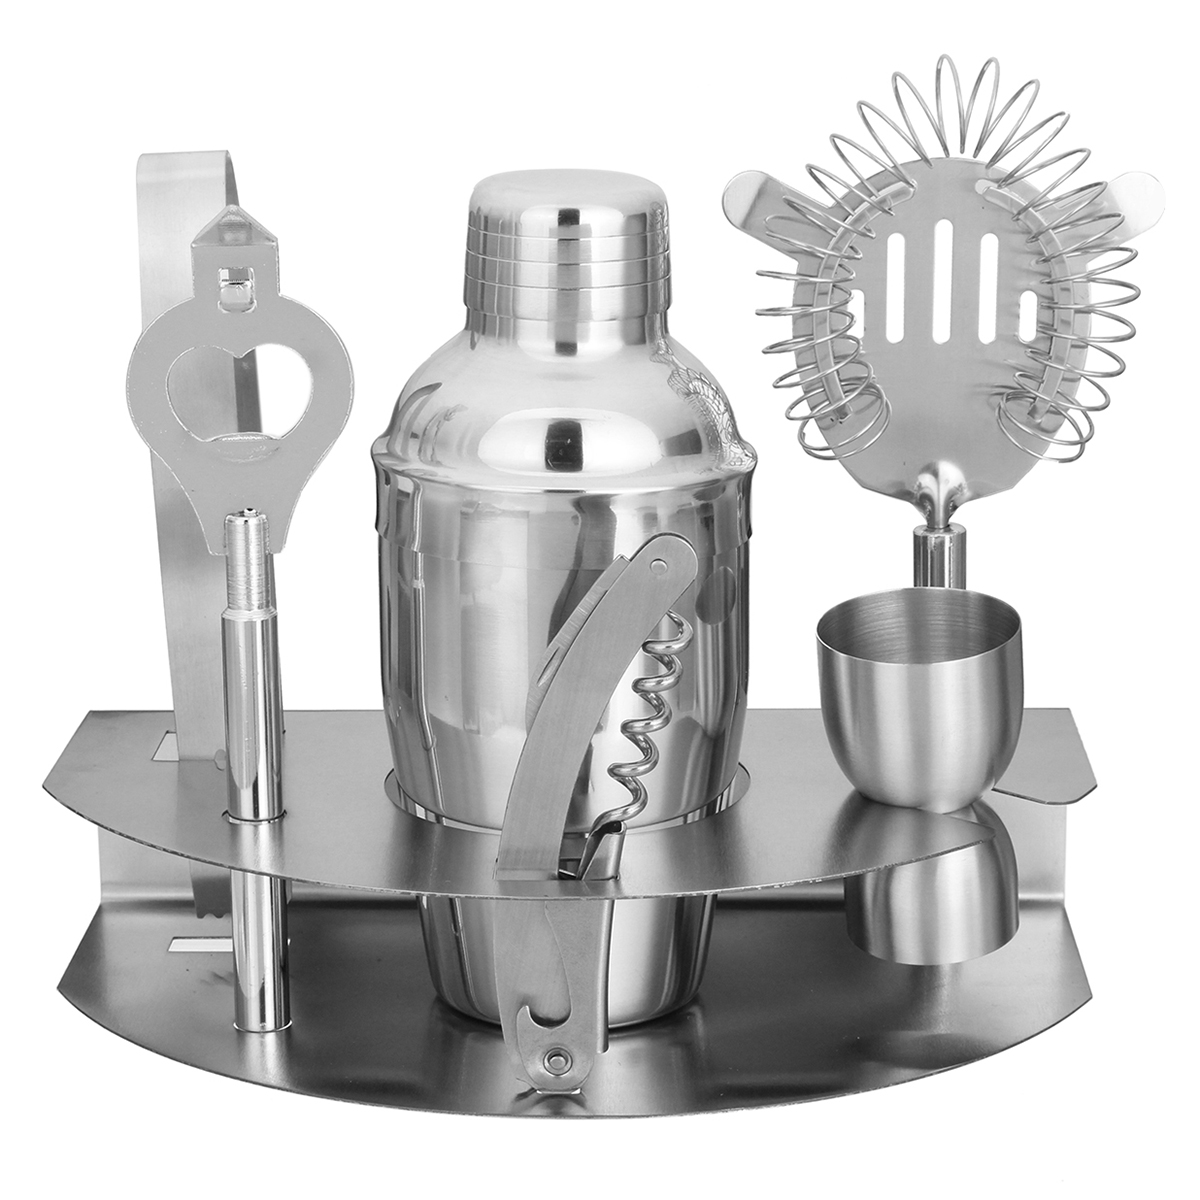 Bartender Shaker Cocktail Drink Mixer Professional Bar Set 7 Piece Stainless Steel Bar Set Tools Martini Kit by